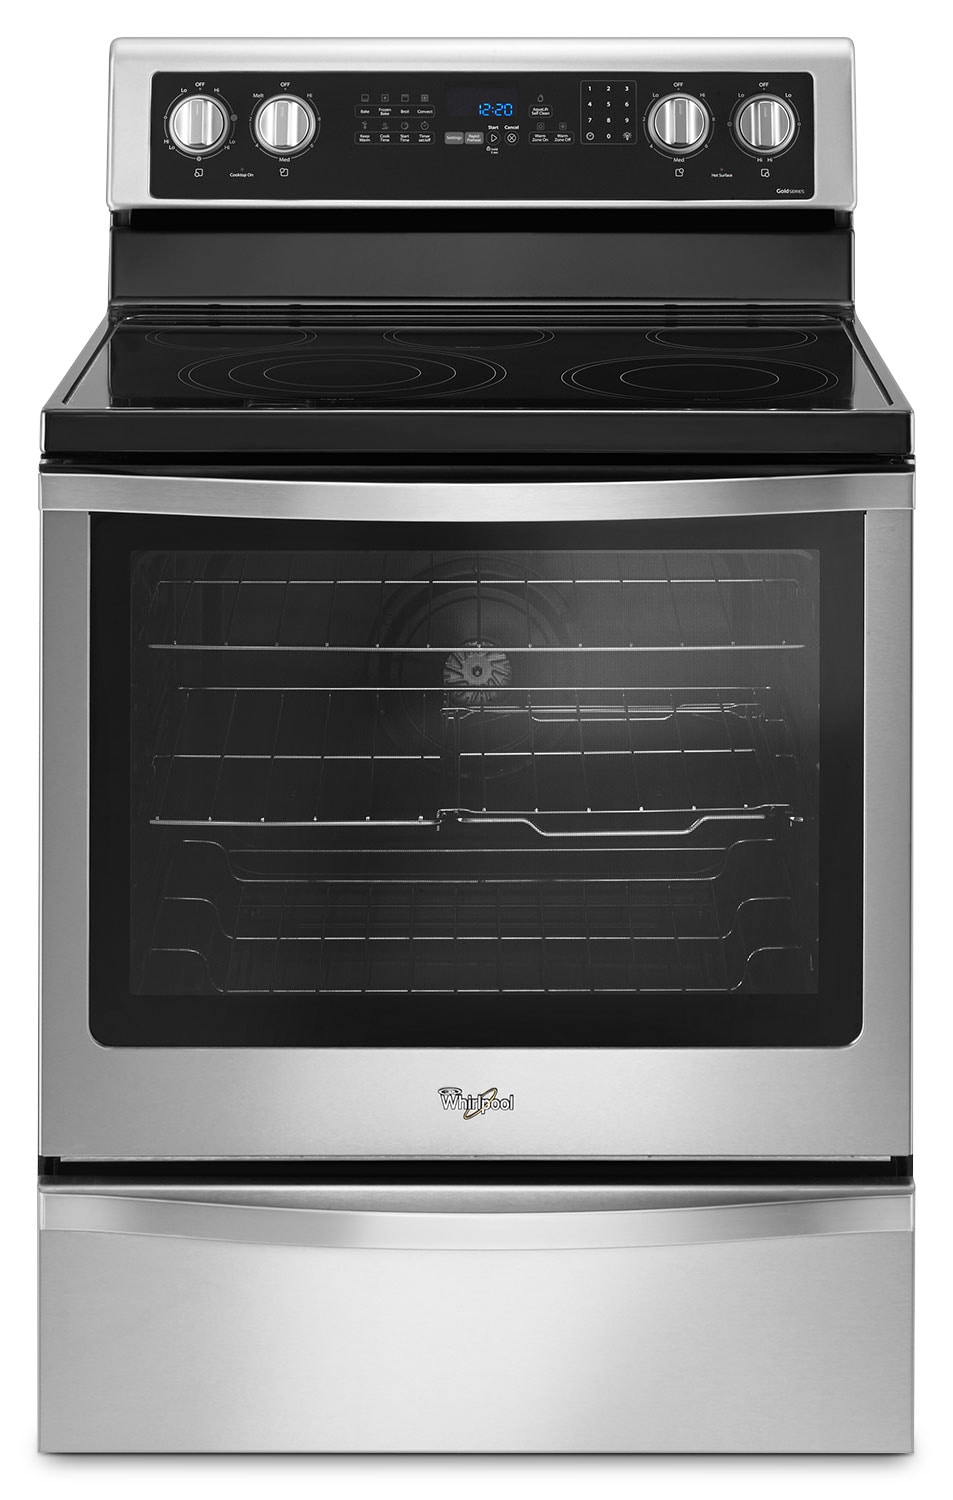 Whirlpool Stainless Steel Freestanding Electric Range 6 4 Cu Ft Ywfe745h0fs Leon 39 S